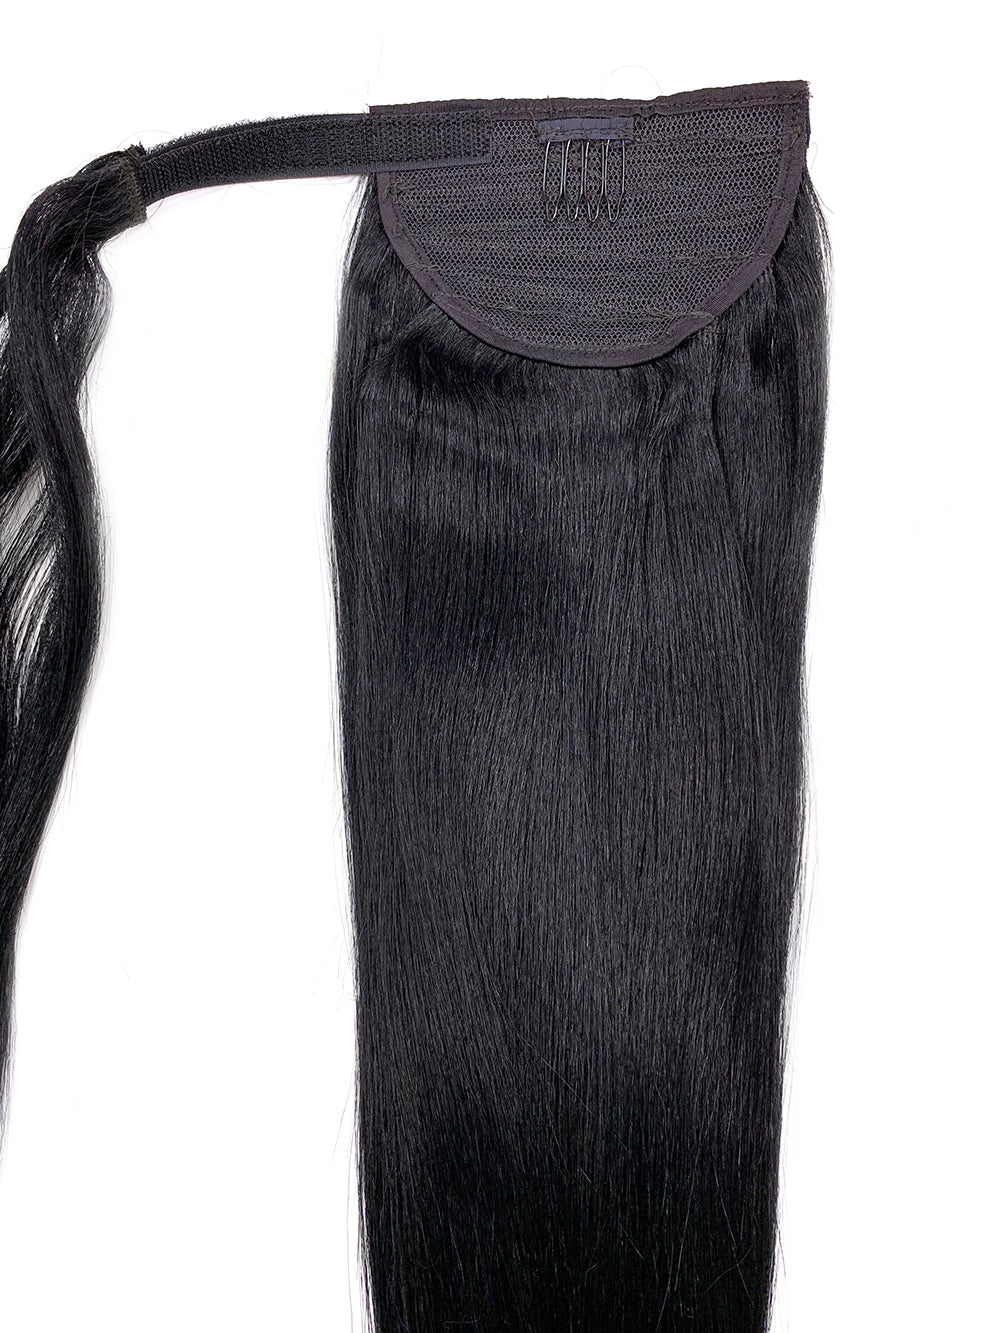 "Wrap Around 100% Human Hair Ponytail in Yaki Perm Straight 22"" - Hairesthetic"